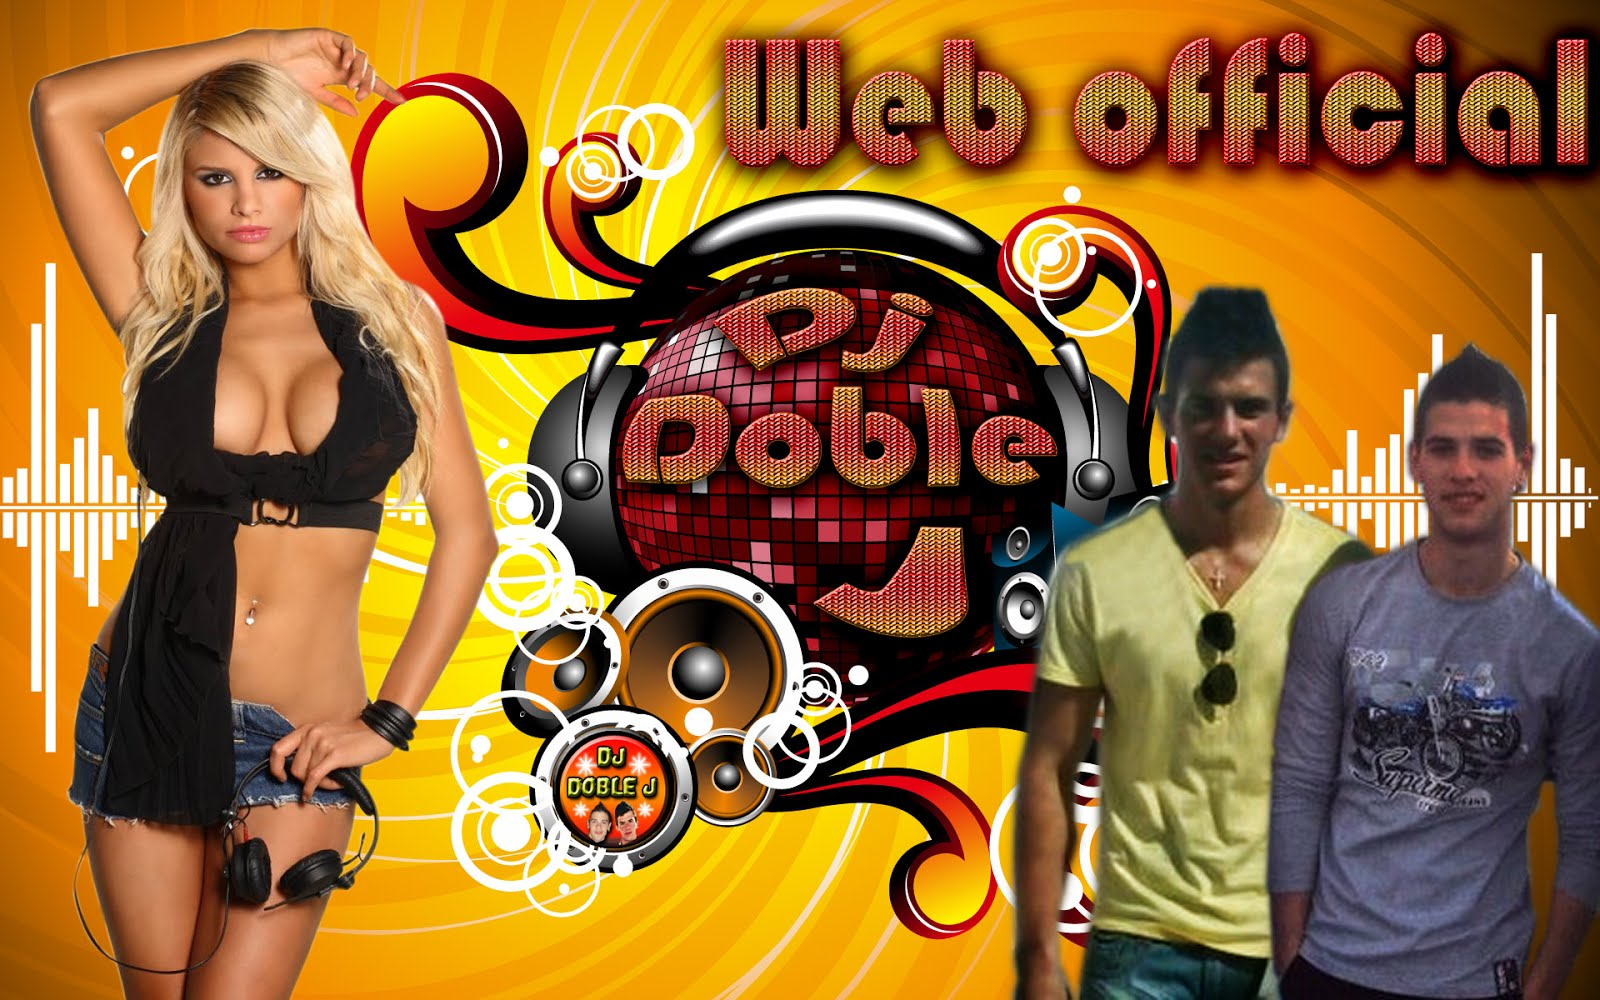 Web Oficial - Dj Doble J